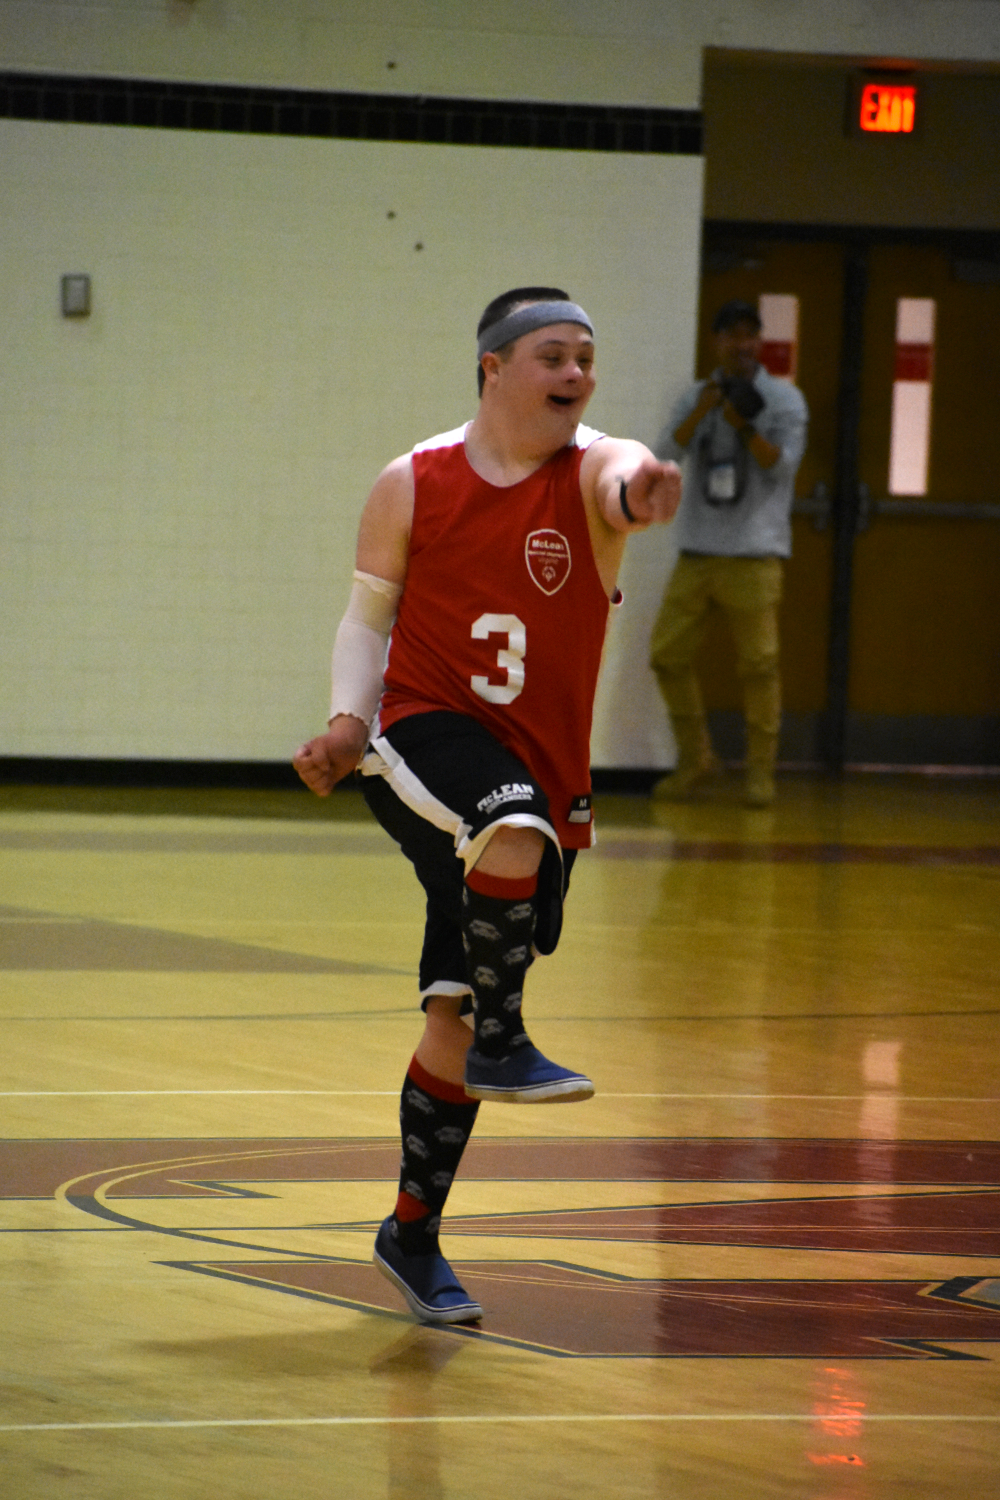 Following+a+3-point+shot%2C+Shue+celebrates+as+he+runs+back+down+the+court.+%28photo+by+Maren+Kranking%29